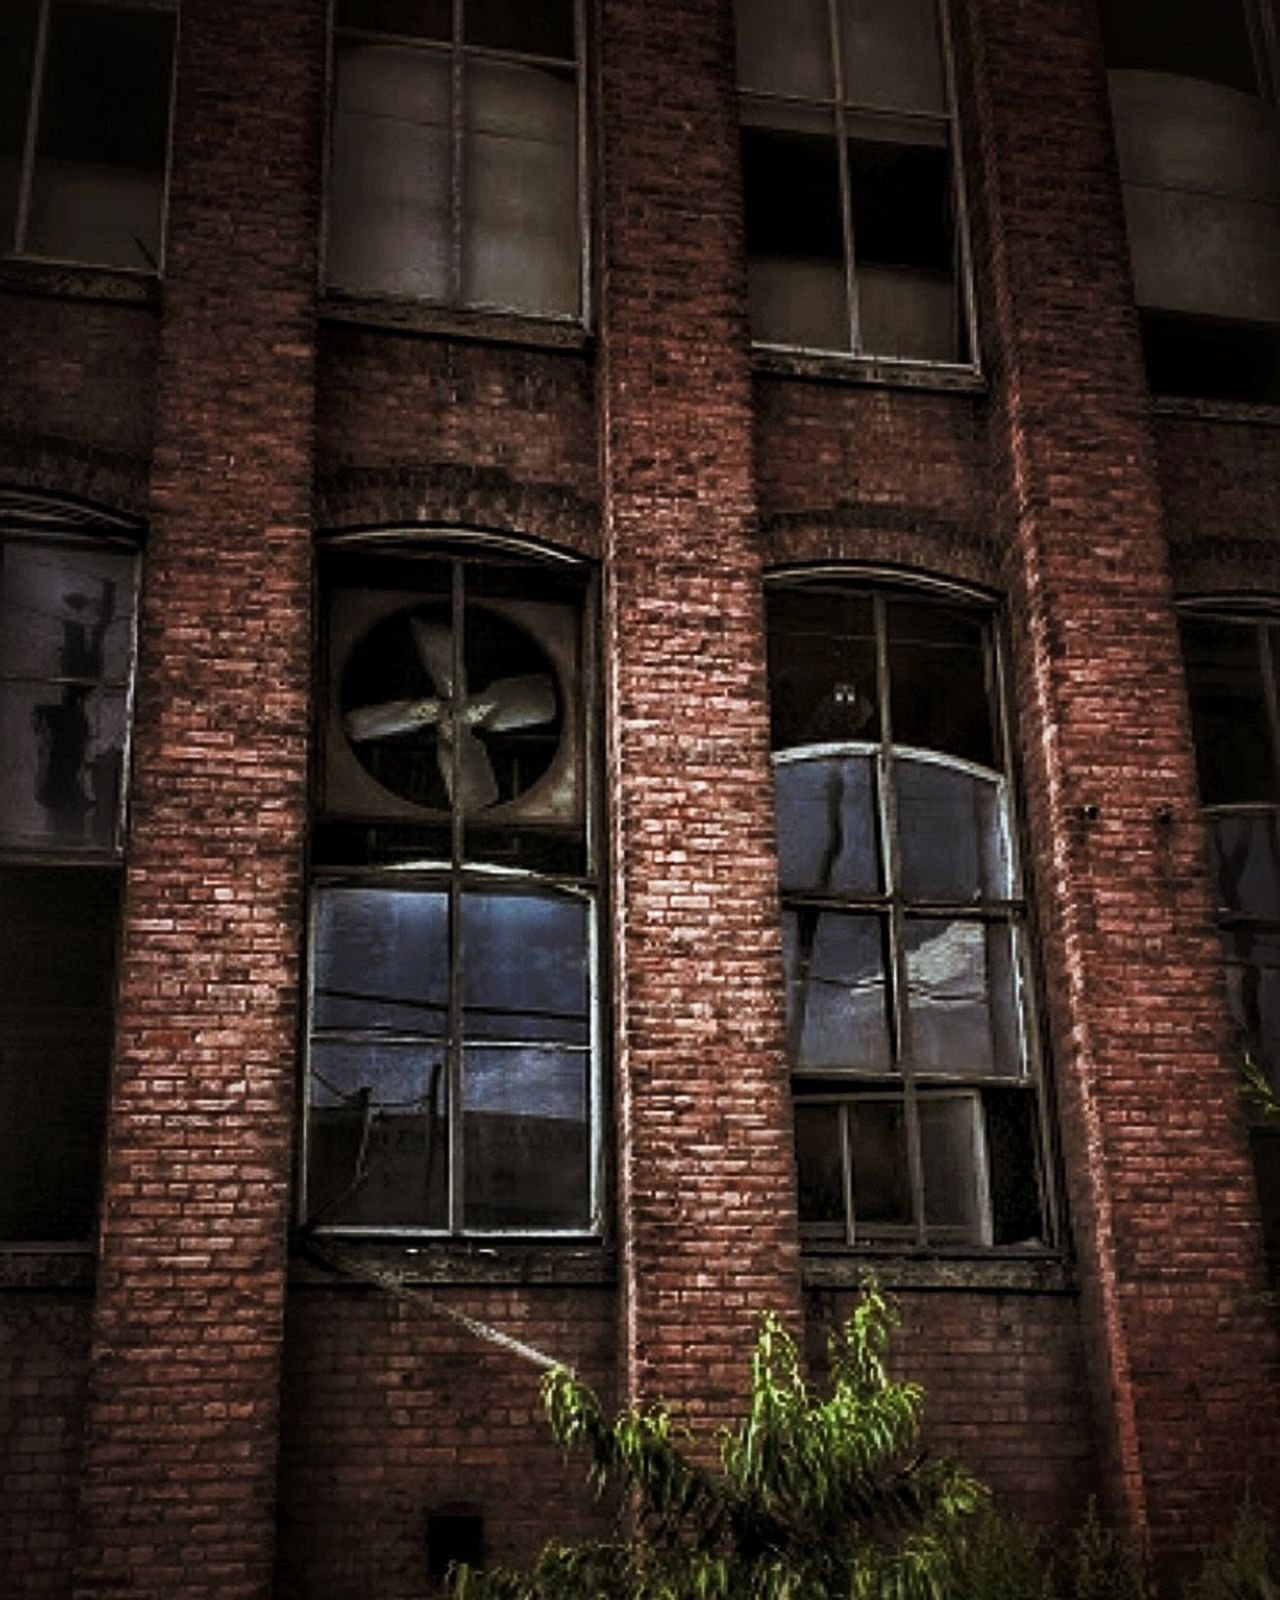 Building Exterior Built Structure Urban Lifestyle Creepy Atmoshpere Abandoned Buildings Tresspassing For Art EyeEm Gallery Textured  Doorsandwindows AMPt - Abandon Abandoned Abandoned Places Decayed Beauty AMPt - My Perspective Broken Window Abandoned & Derelict Brick Wall Brickporn Brick Building EyeEm_abandonment